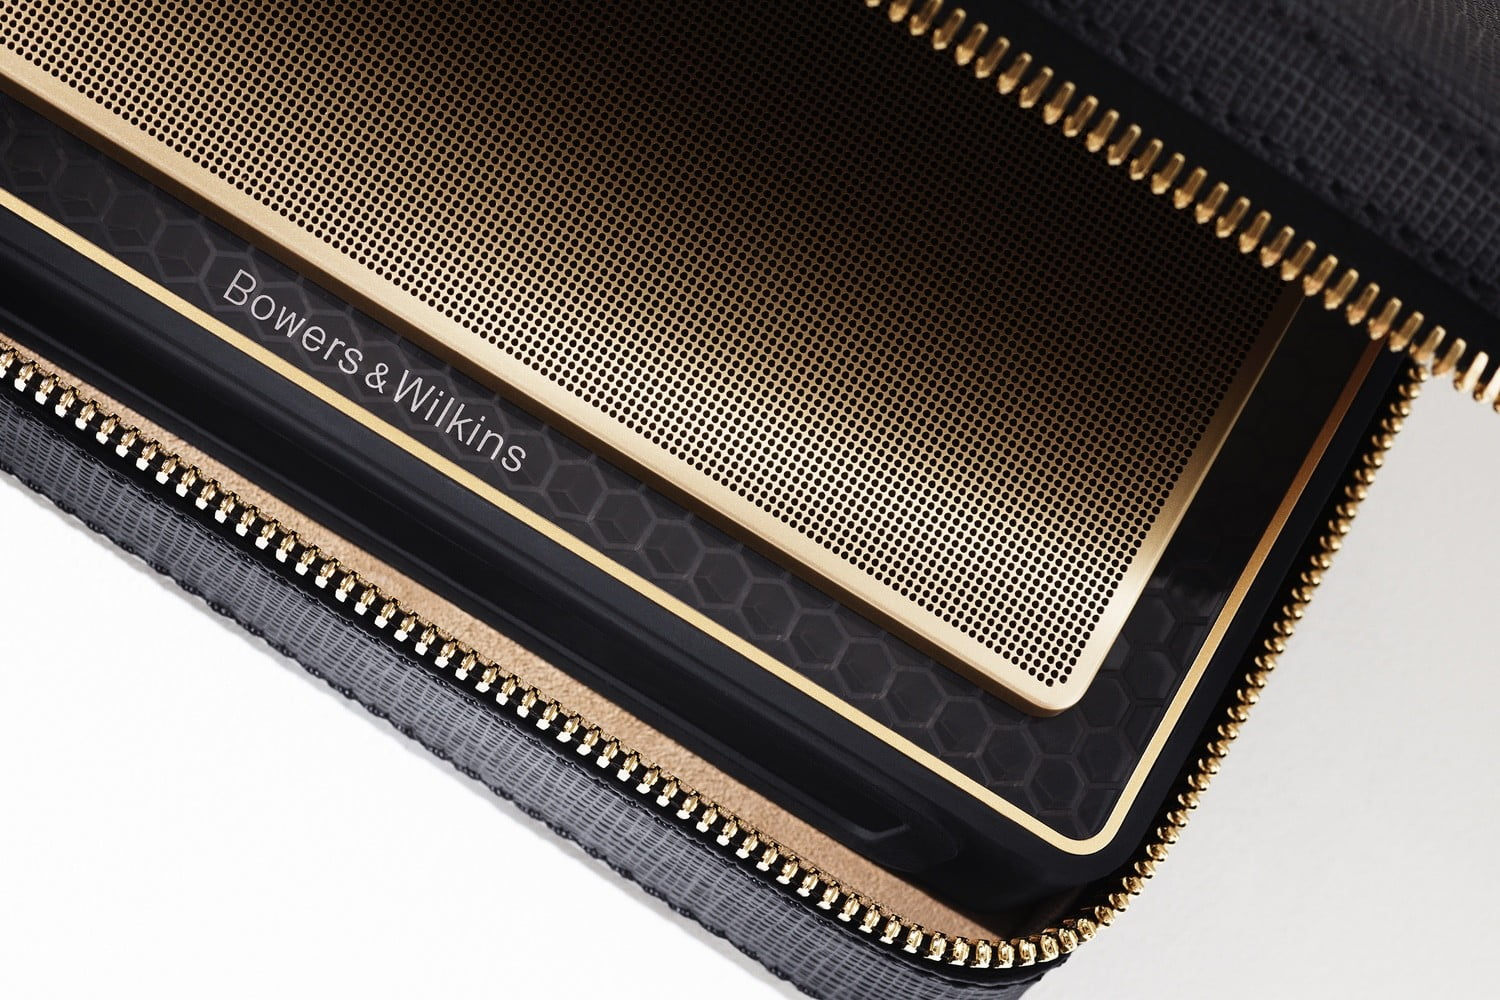 bowers wilkins burberry t7 bluetooth speaker and gold edition 2